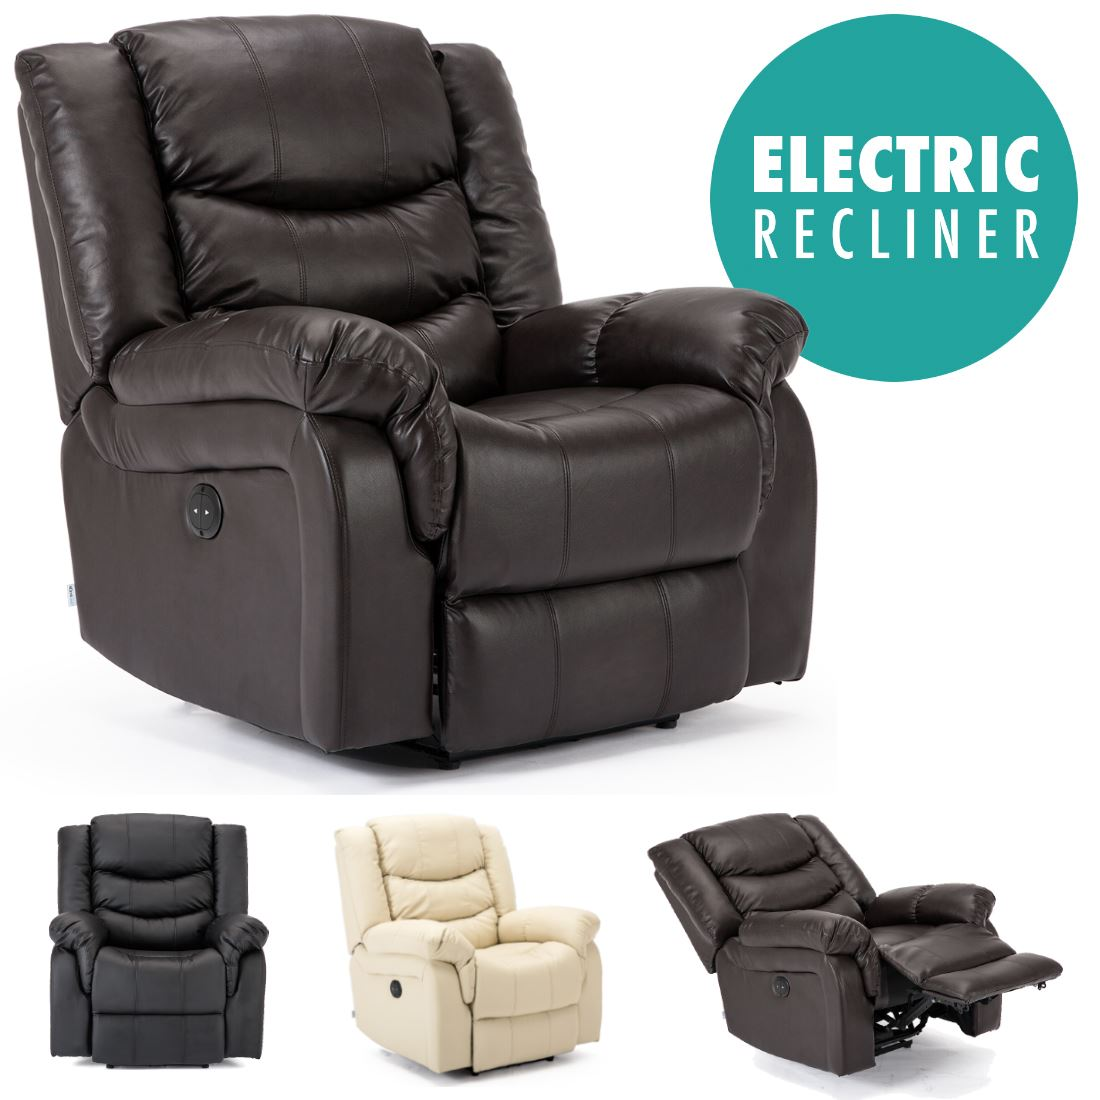 Astounding Details About Seattle Electric Leather Auto Recliner Armchair Sofa Home Lounge Chair Cjindustries Chair Design For Home Cjindustriesco